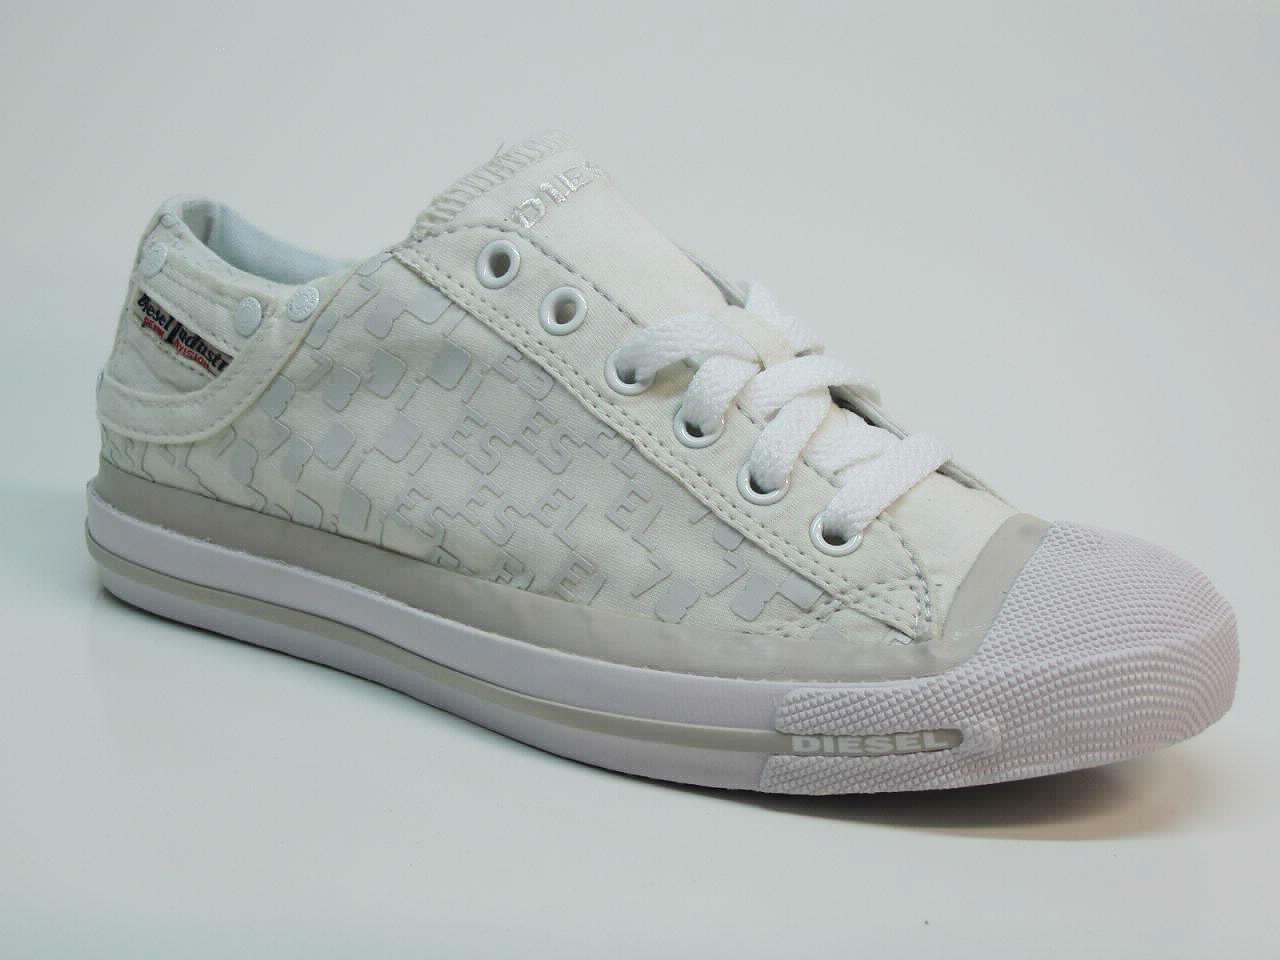 New Diesel sport sneakers trainers trainers trainers boots. Choose model/Taille. Not leather. Vegan. bb8bb4